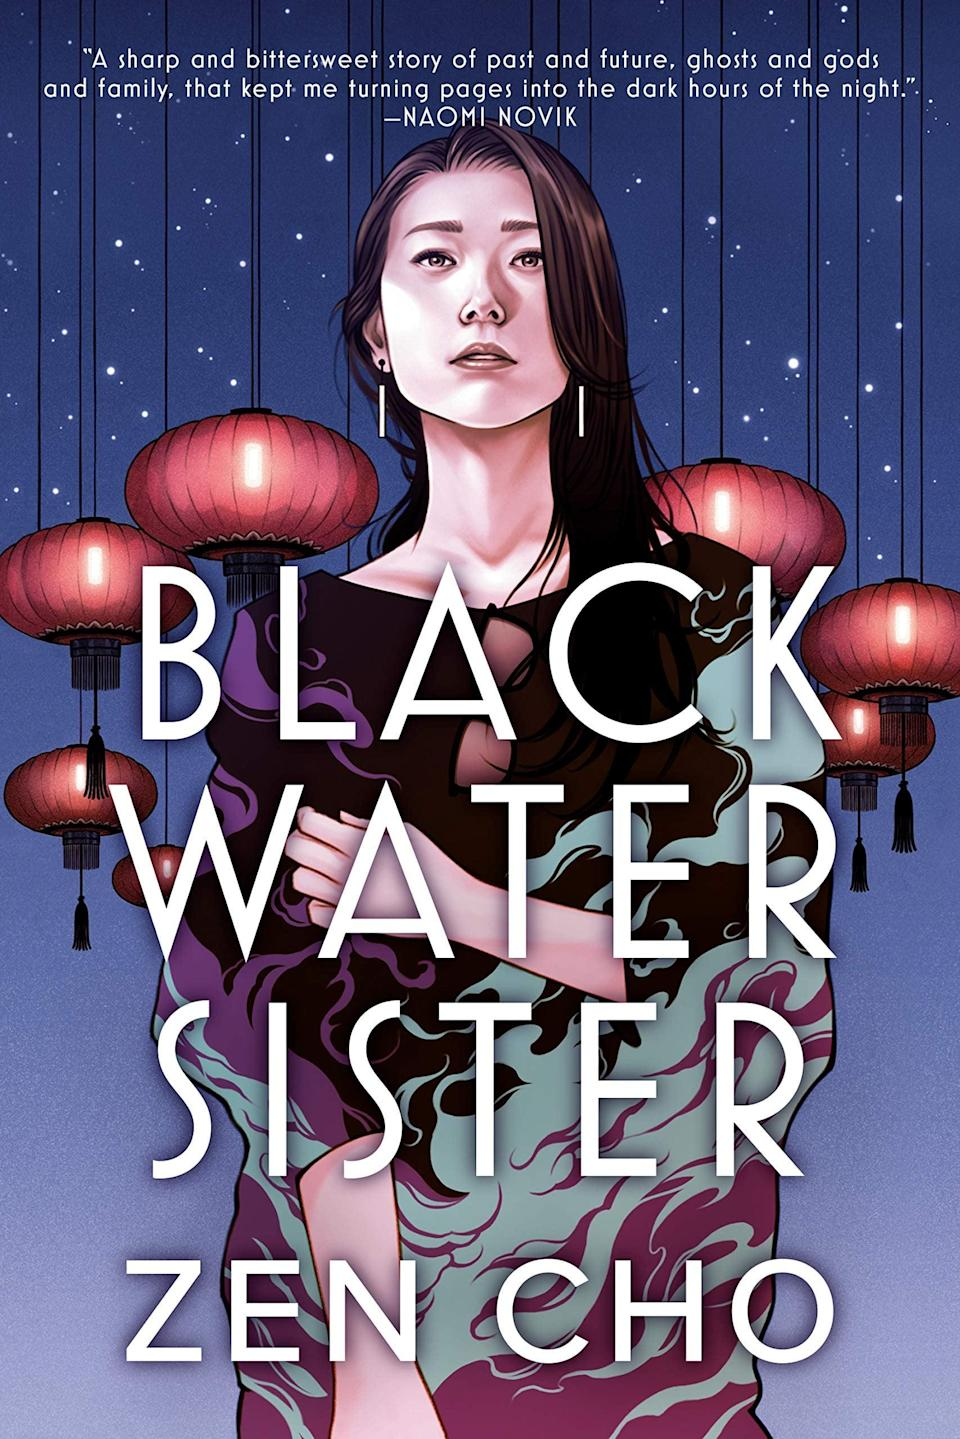 <p>A modern-day fantasy novel set in Malaysia, <span><strong>Black Water Sister</strong></span> by Zen Cho is, at its heart, a story of family ties. Jessamyn Teoh, who has no job and hasn't come out to her family, begins hearing a voice in her head when she moves back to Malaysia with her parents. The voice in question belongs to her deceased grandmother Ah Ma, who was a medium in life. Now, Ah Ma is determined to exact revenge on a business magnate with Jessamyn's help - no matter how reluctant her granddaughter may be to involve herself in a world of gods and ghosts. </p> <p><em>Out May 11</em></p>